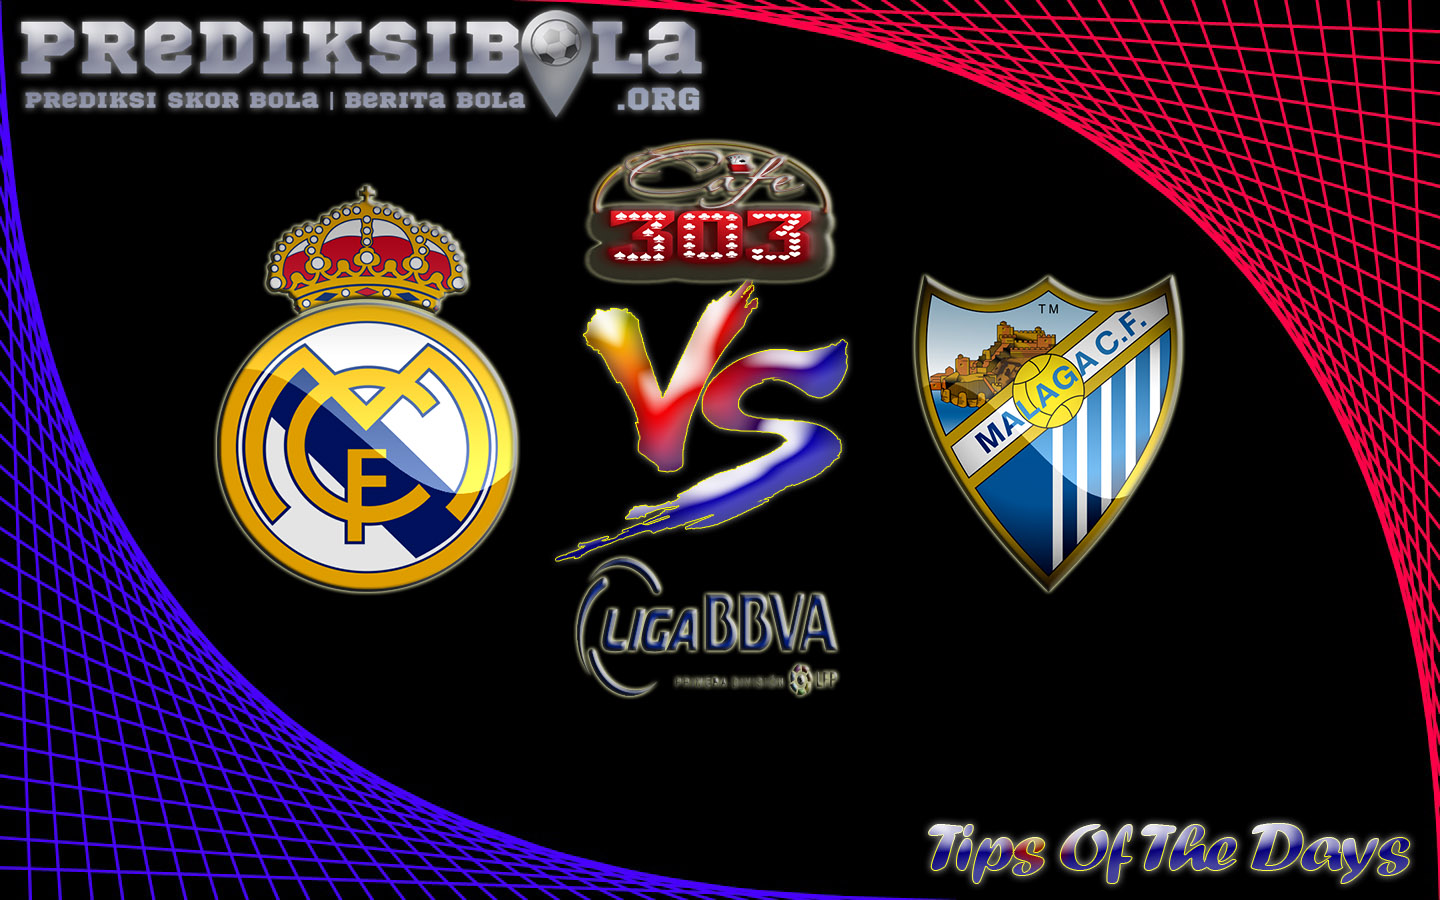 Prediksi Skor Real Madrid Vs Malaga 21 Januari 2017